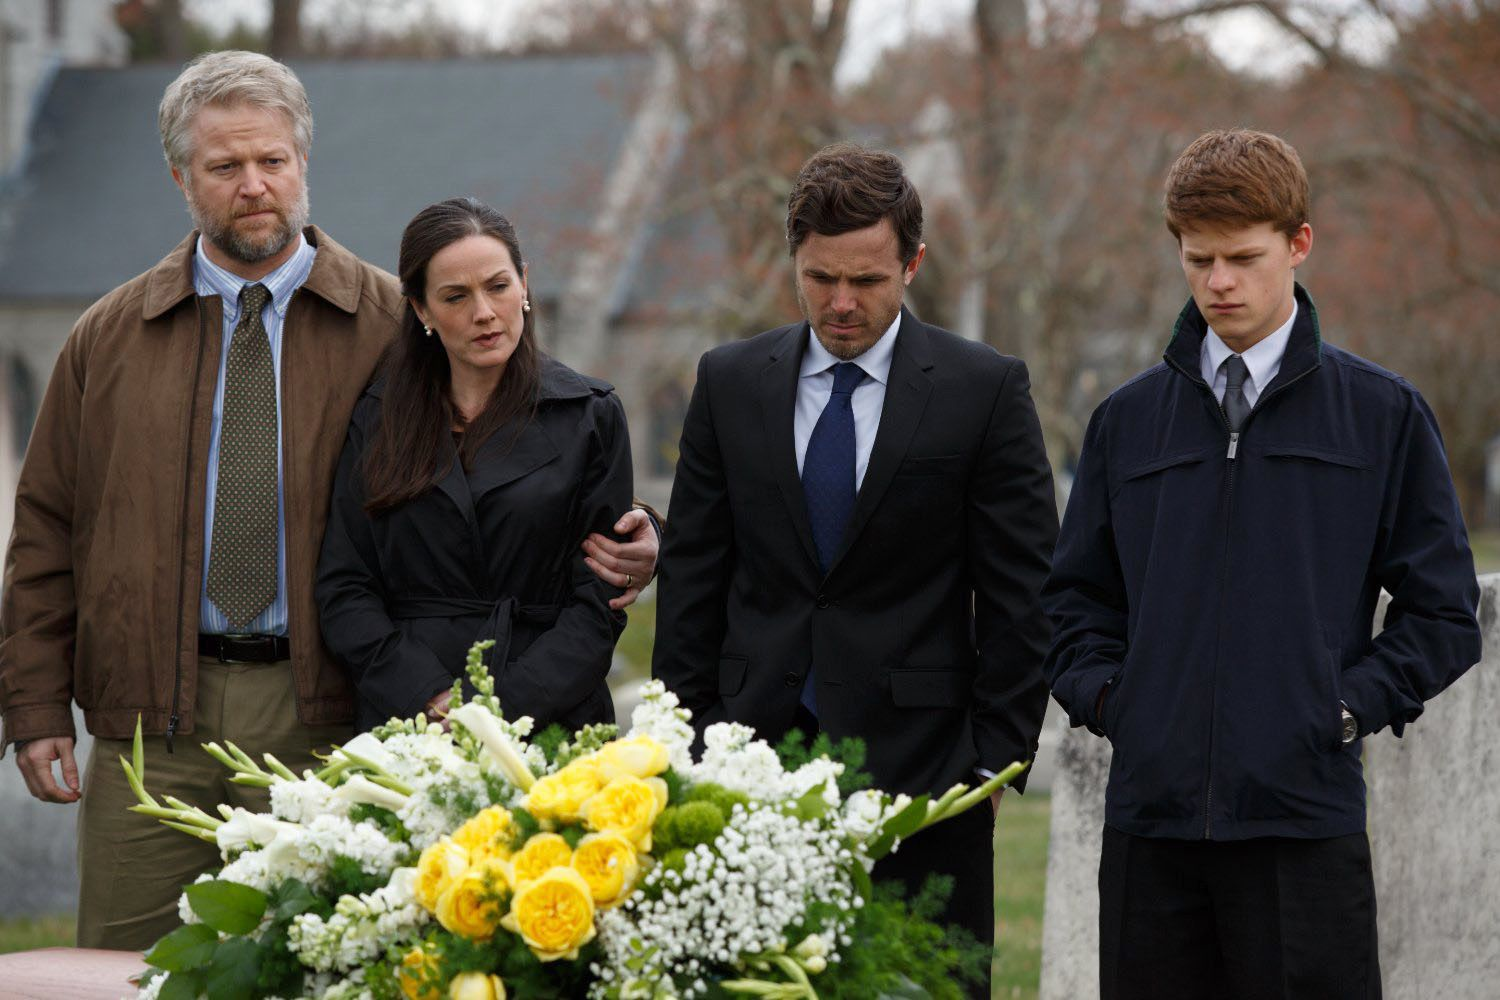 "(Left to Right) C.J. Wilson, Jami Tennille, Casey Affleck and Lucas Hedges in a scene from the movie ""Manchester by the Sea"" directed by Kenneth Lonergan."